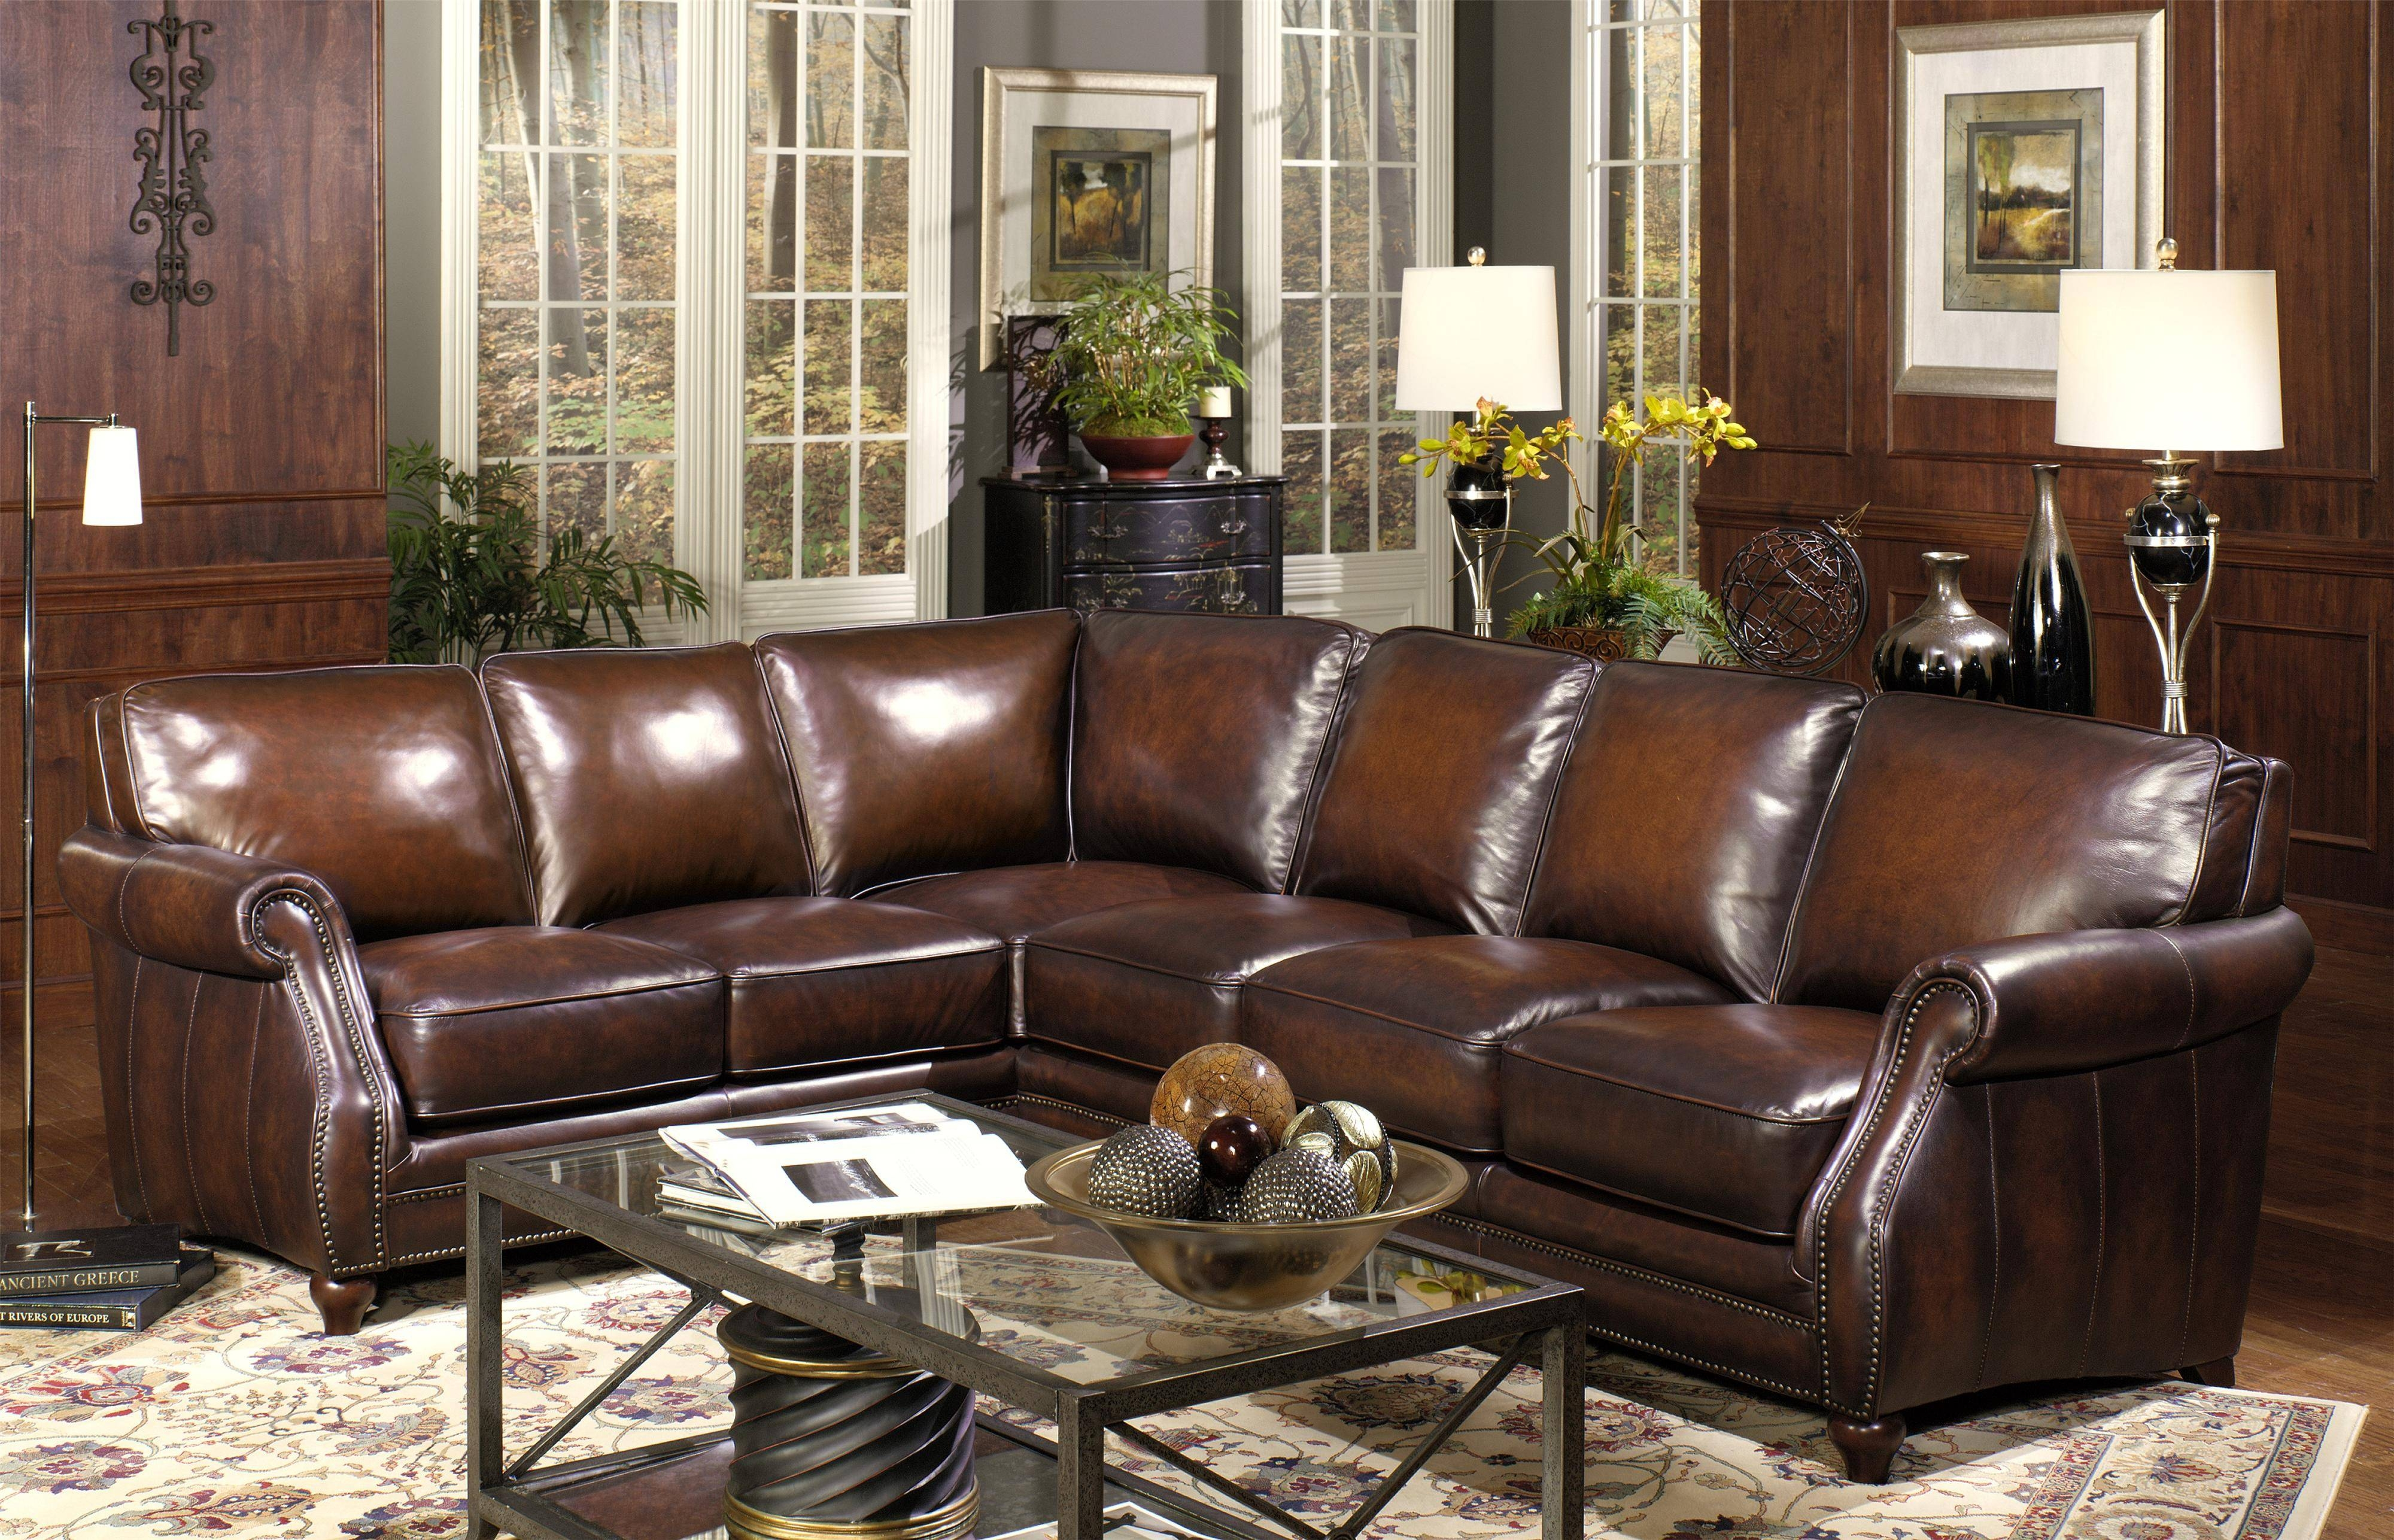 Best Leather Furniture. One Of The Finest Features Of A Leather throughout Traditional Leather Couch (Image 2 of 30)